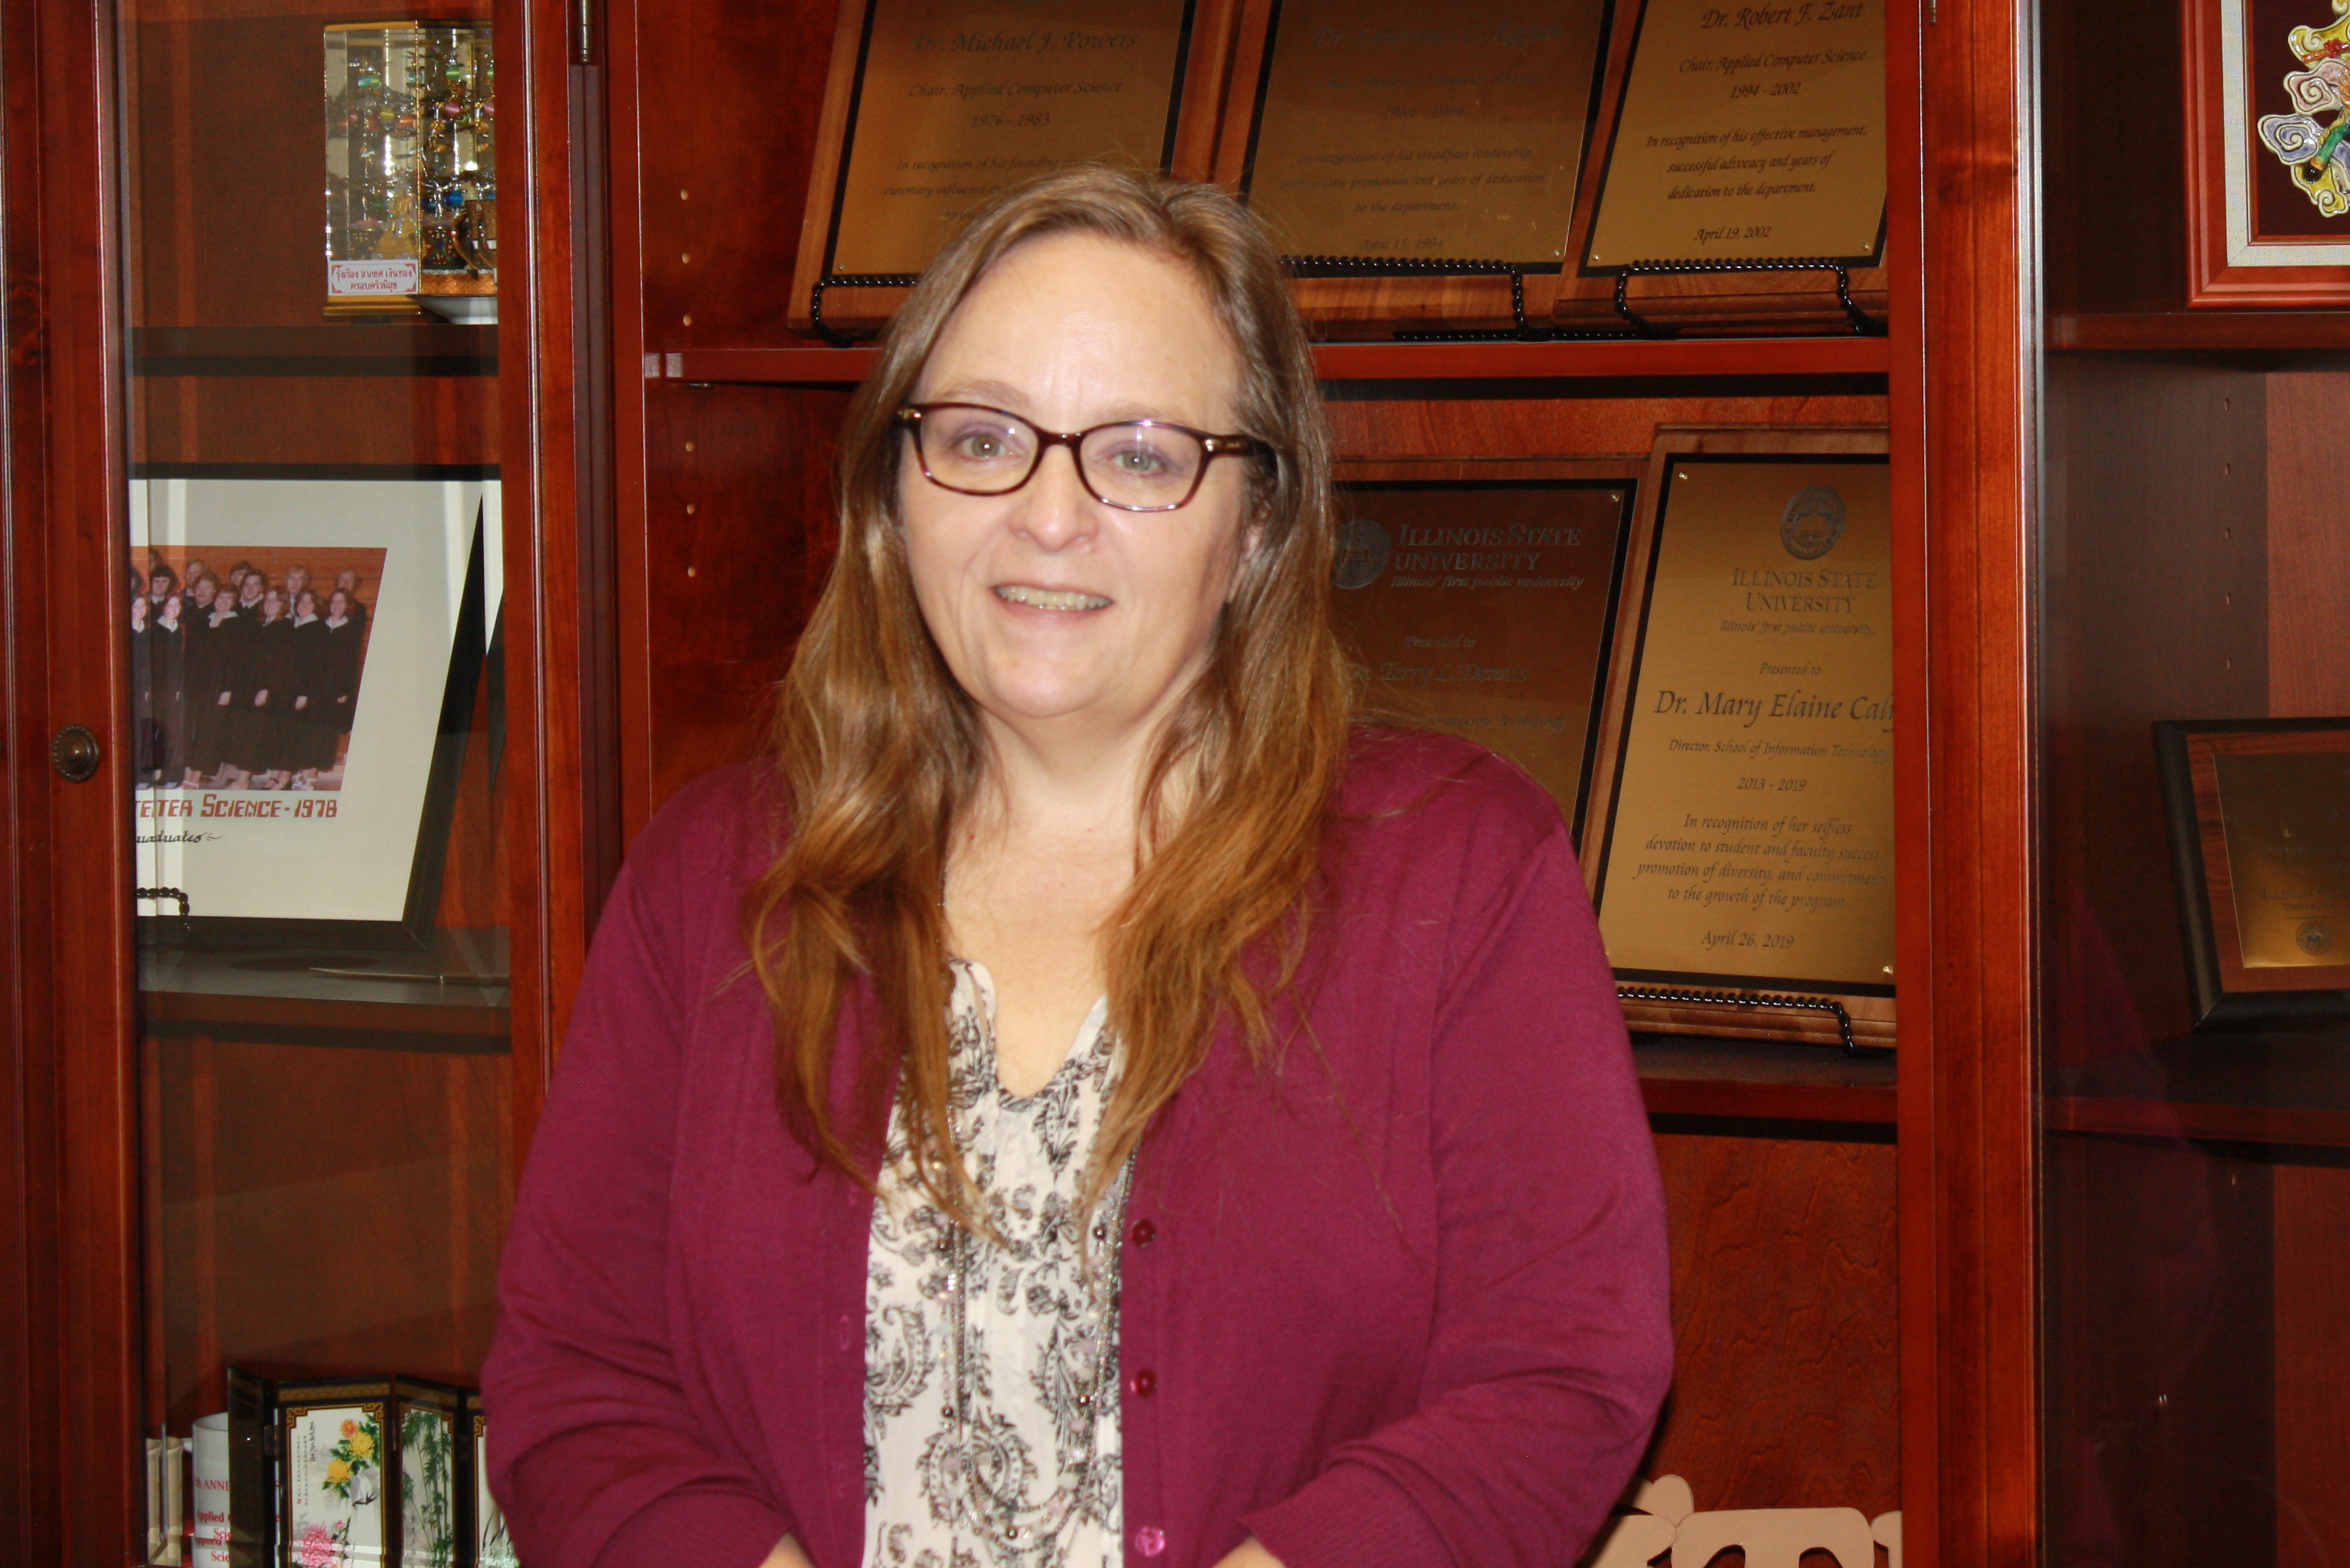 Traci Carte is the new director of the School of Information Technology.